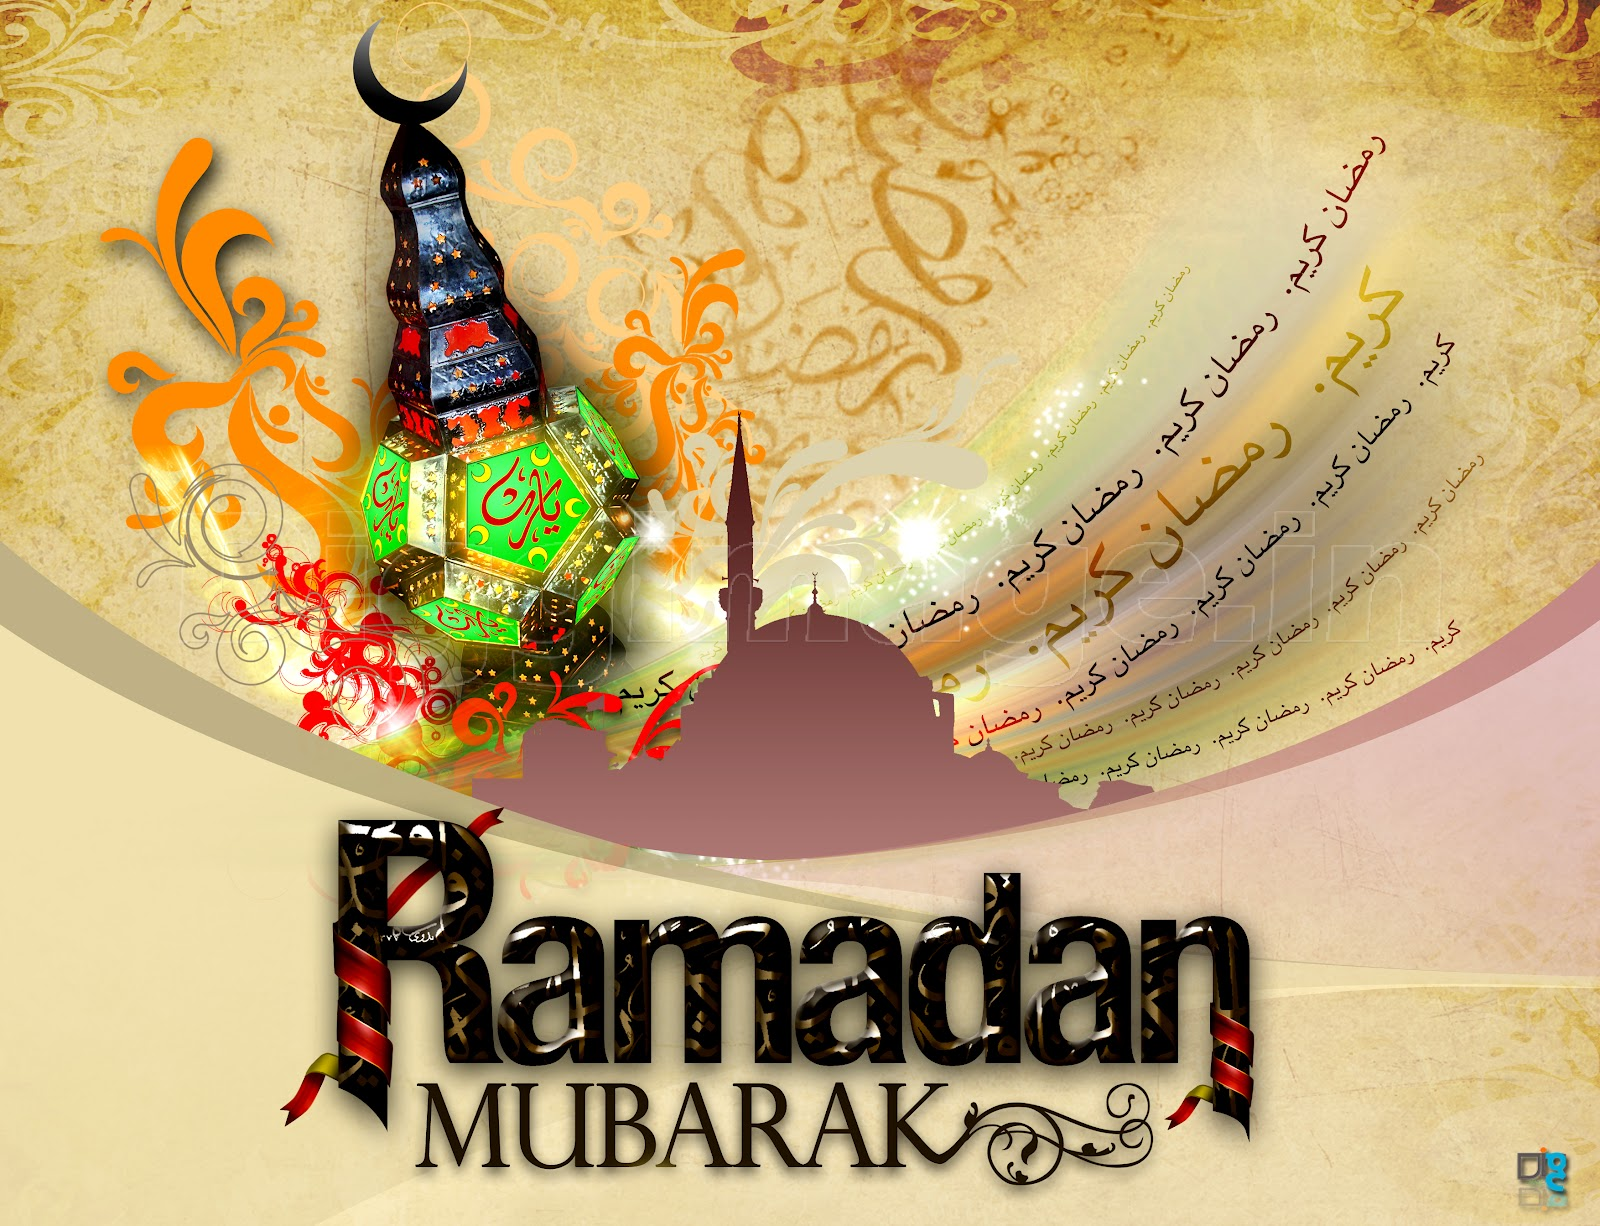 Hd wallpaper ramzan mubarak - Ramadan Mubarak Hd Wallpapers Wishing Happy Ramadan In Urdu Scraps Having Spiritual Quotes